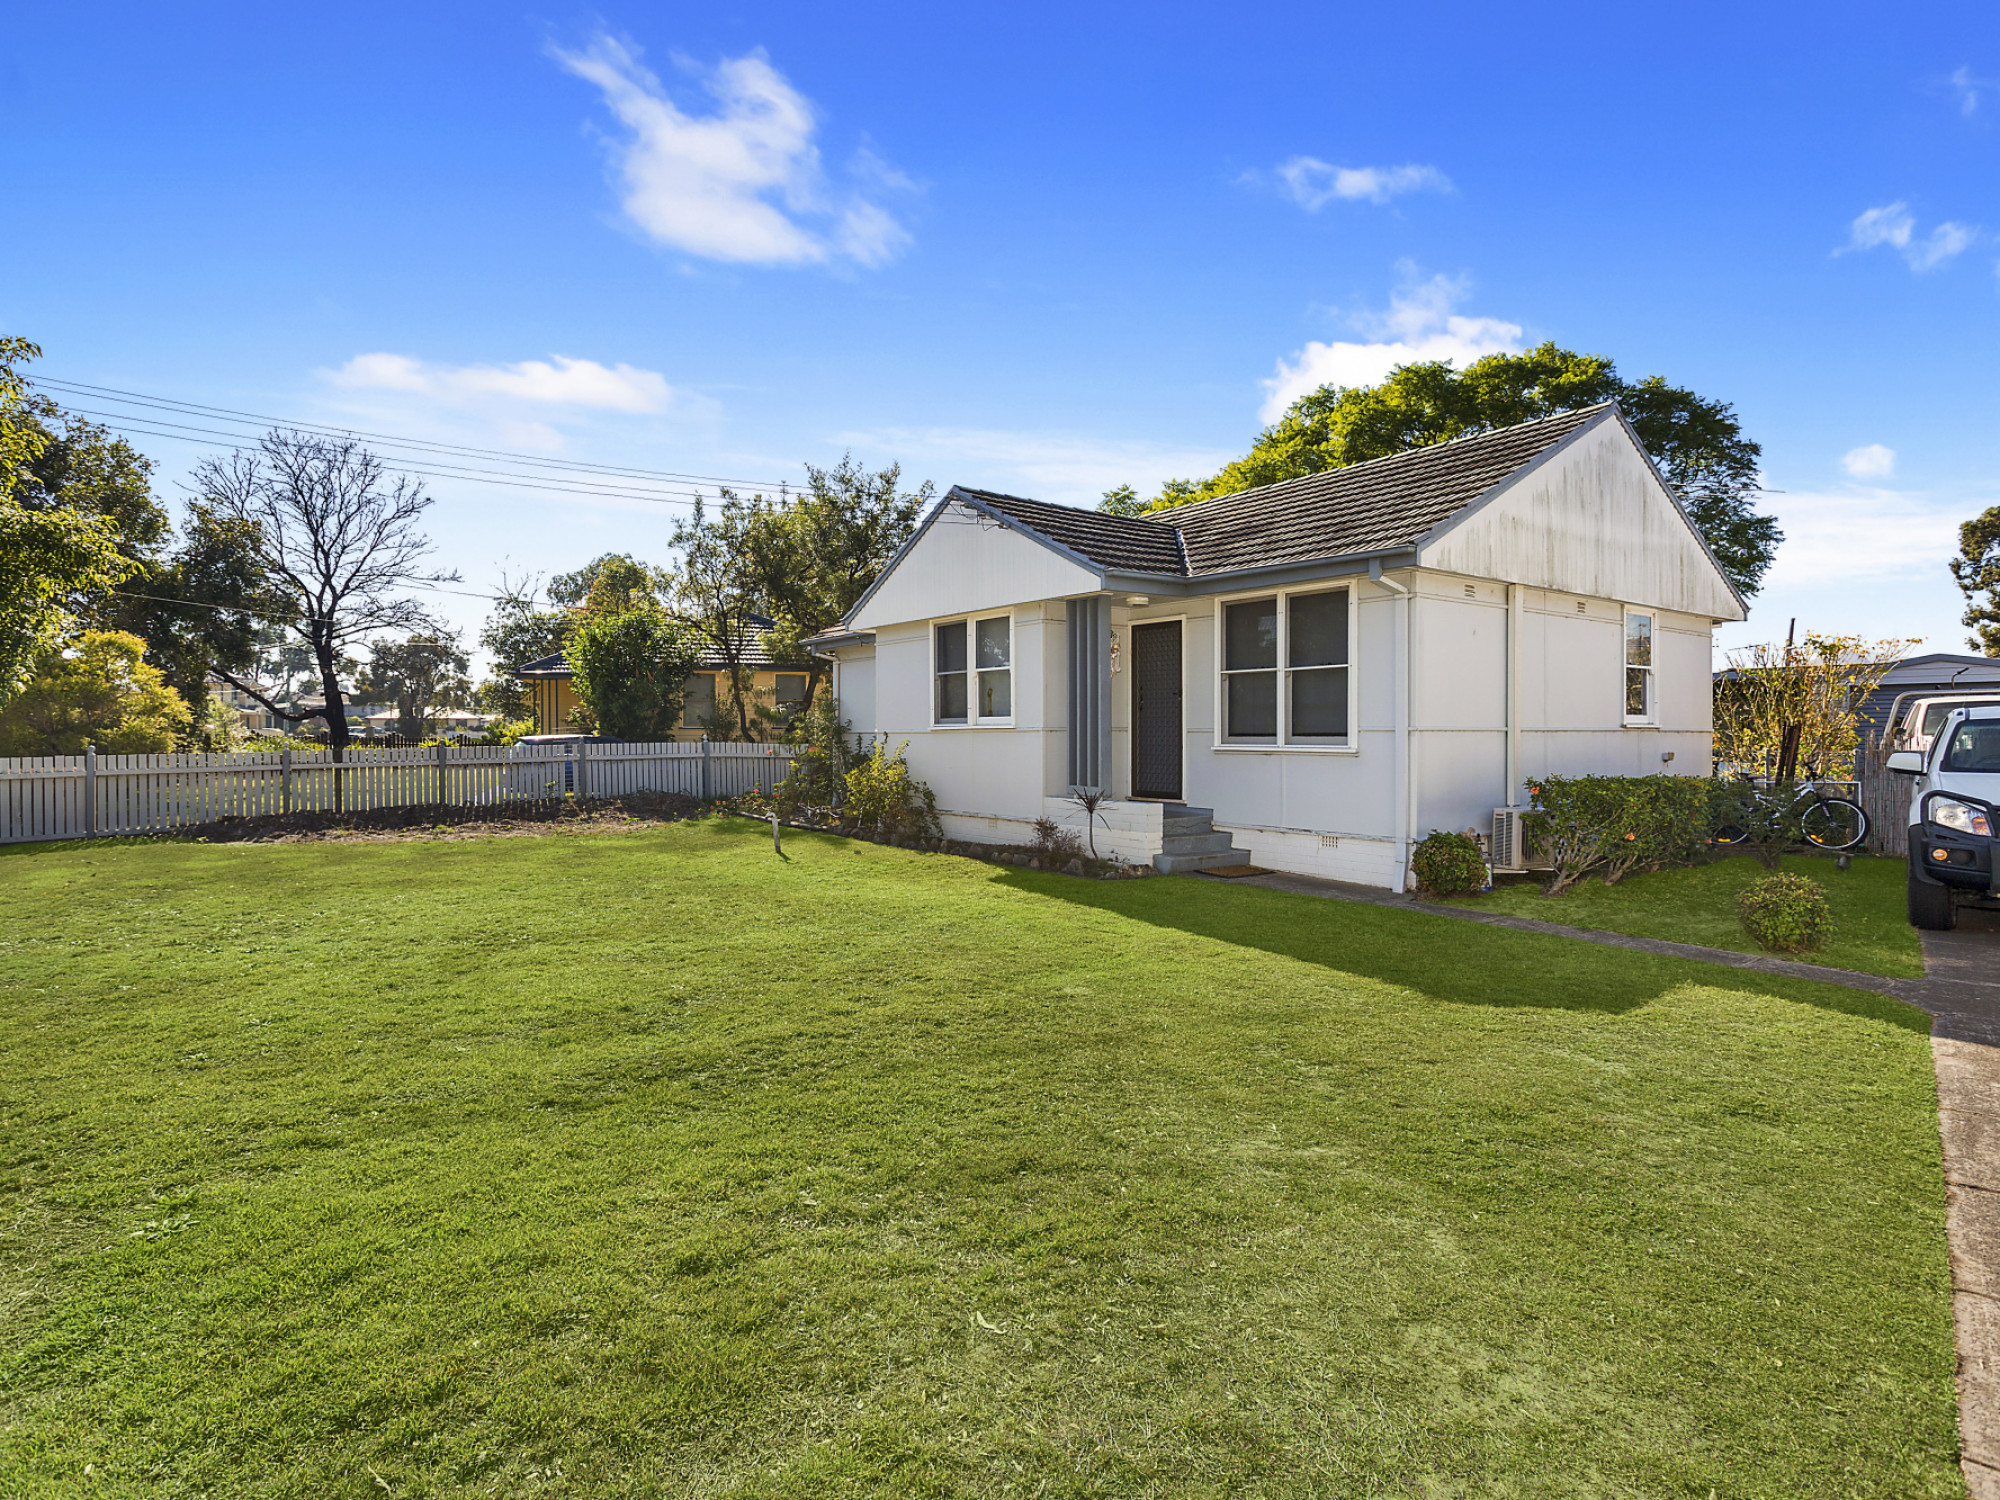 14 Satelberg St, Holsworthy